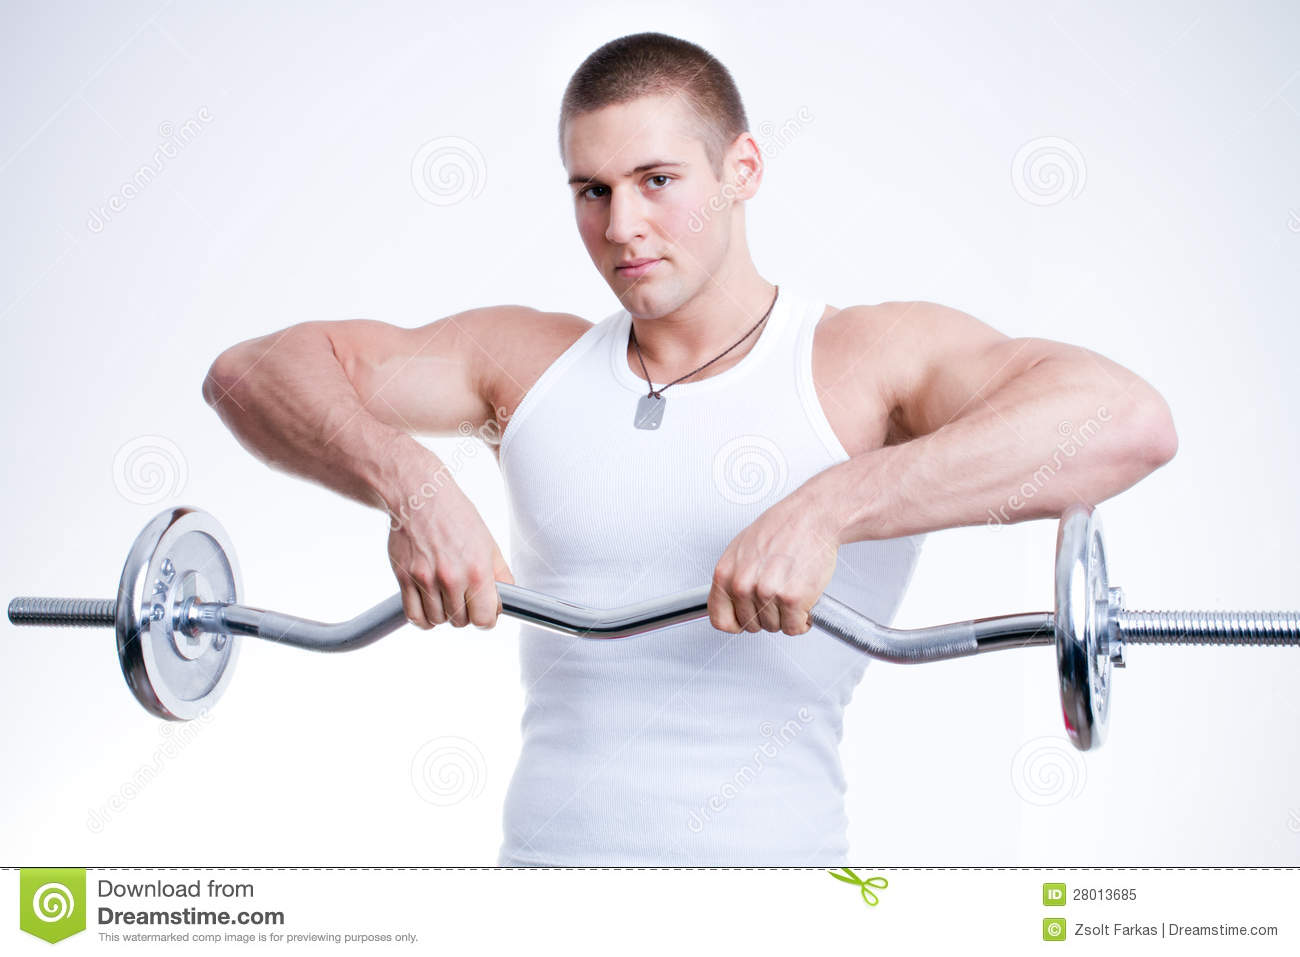 Man Lifting Weights Royalty Free Stock Photo - Image: 28013685